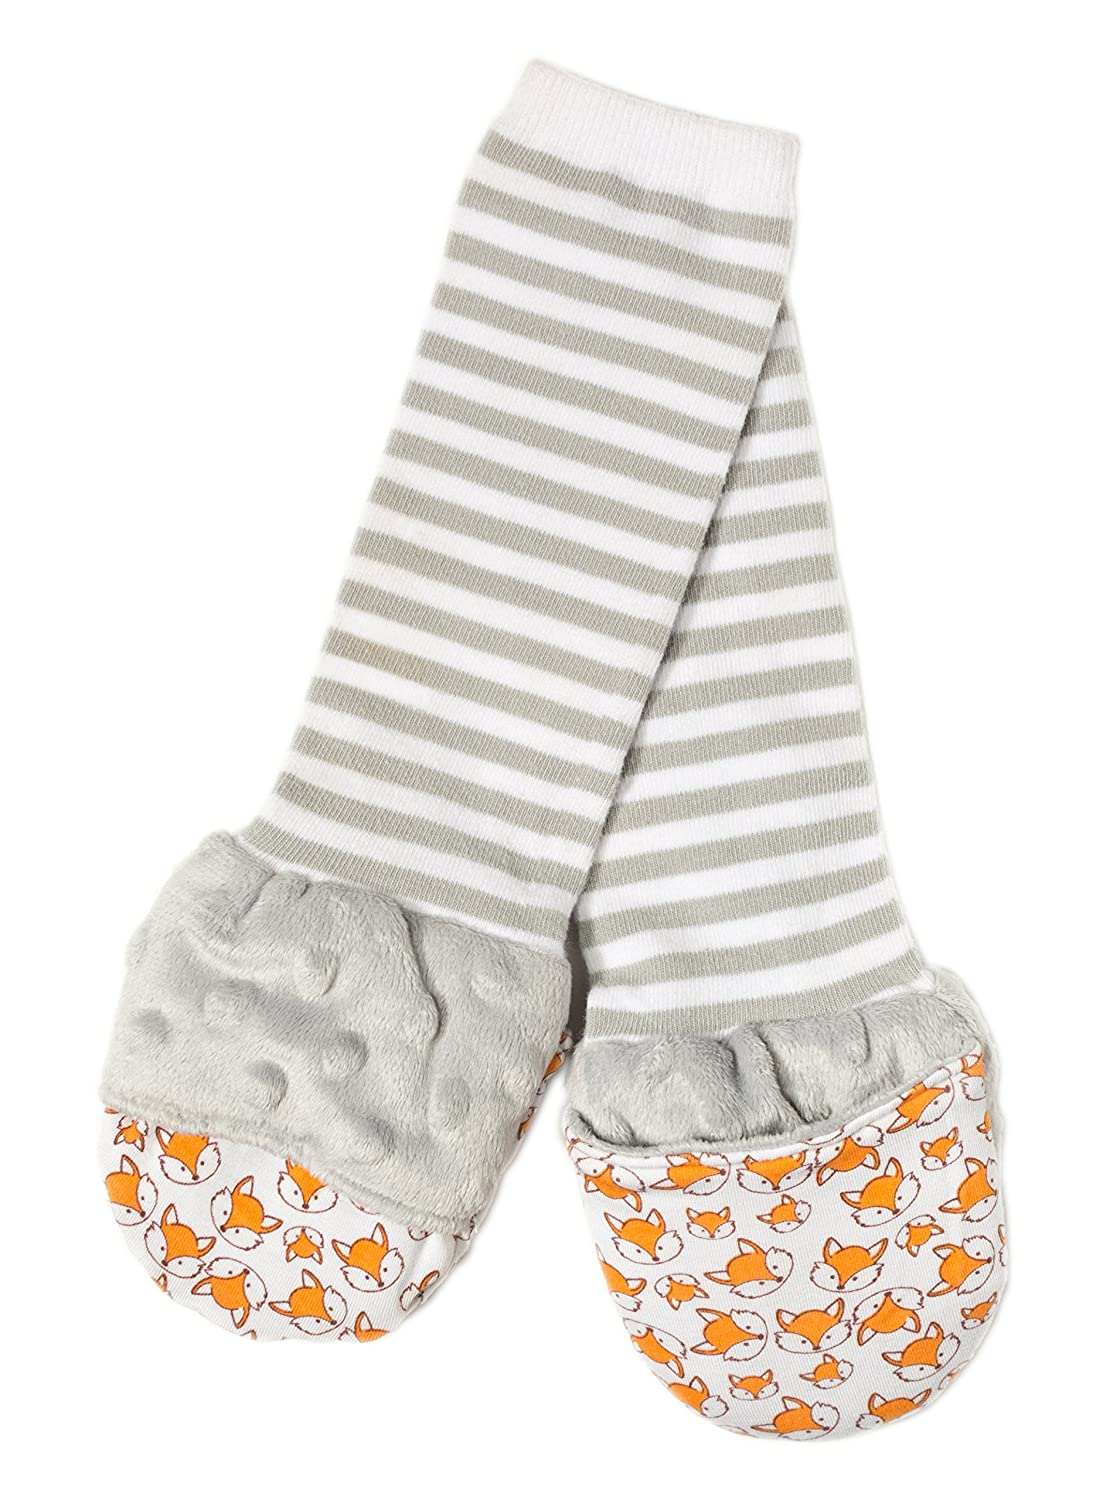 Handsocks Plushy Stay On Strap-Free No-Scratch & Warmth Baby & Kid Mittens (Medium (6-12 Months. Bicep Size Should be 5.0'-8.0'), Olivia (Grey/Yellow Elephant))